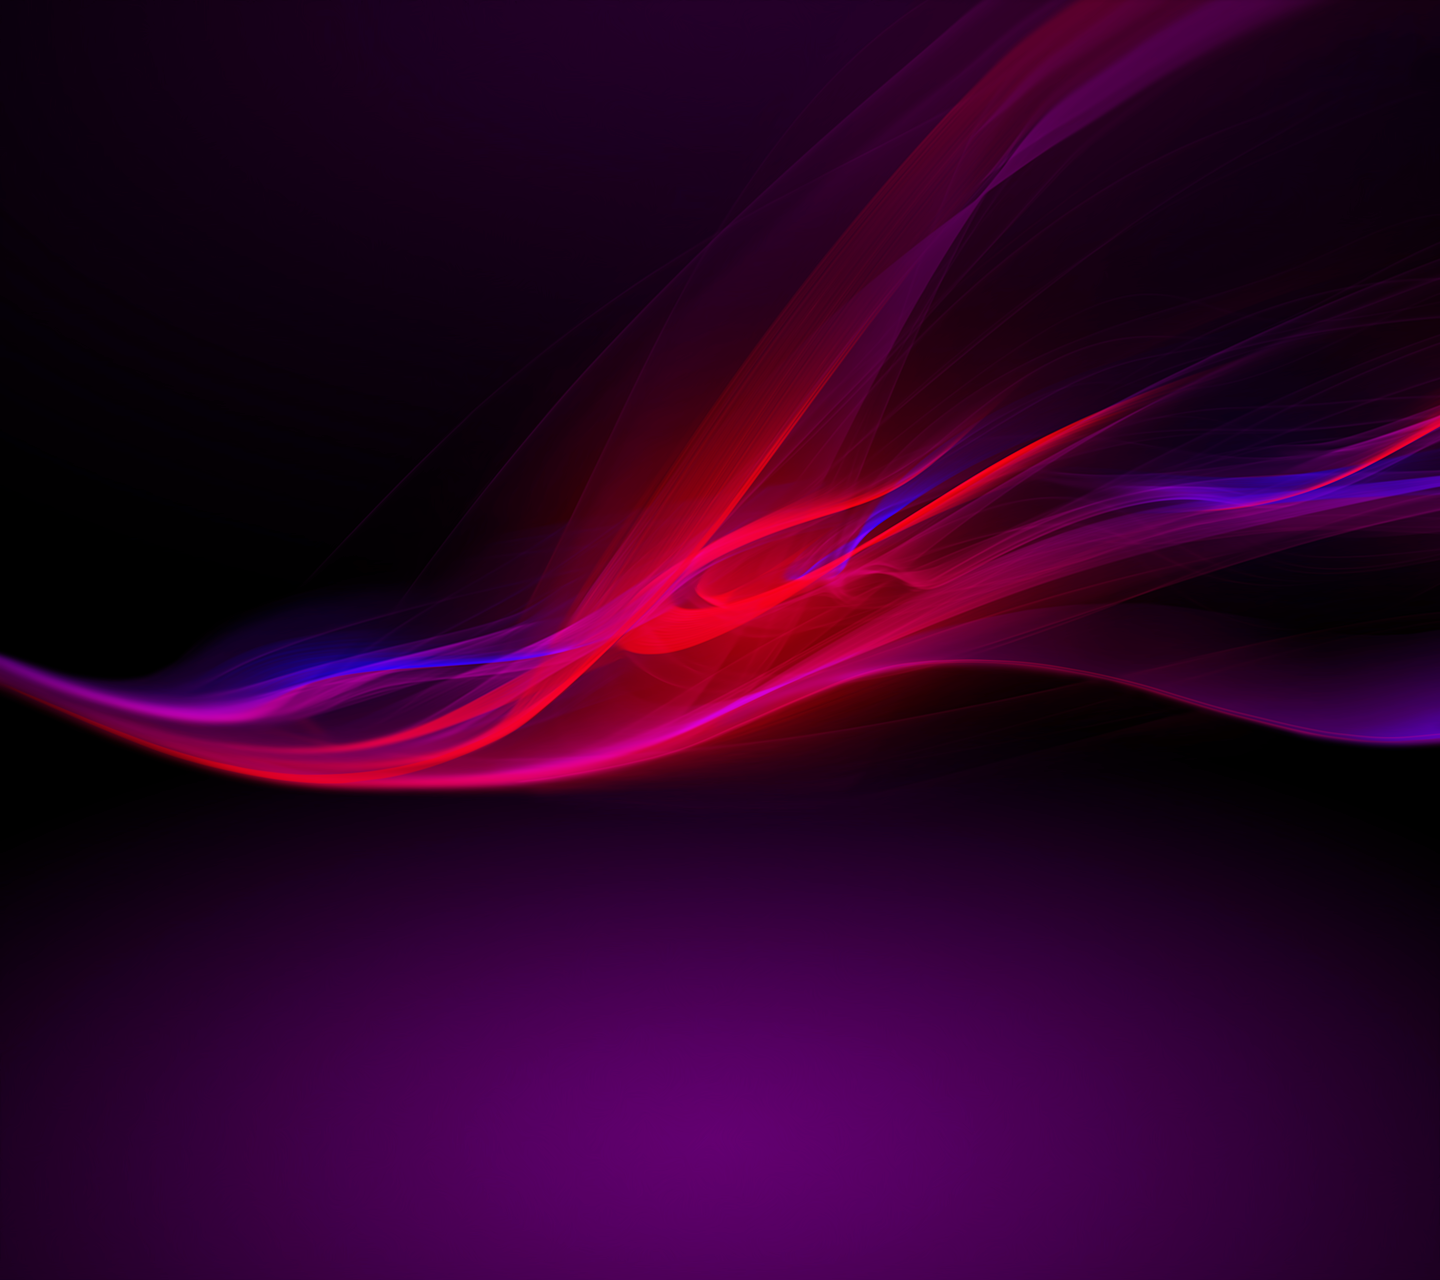 Free Download Download Sony Xperia Z Hd Wallpaper Ricky Chew